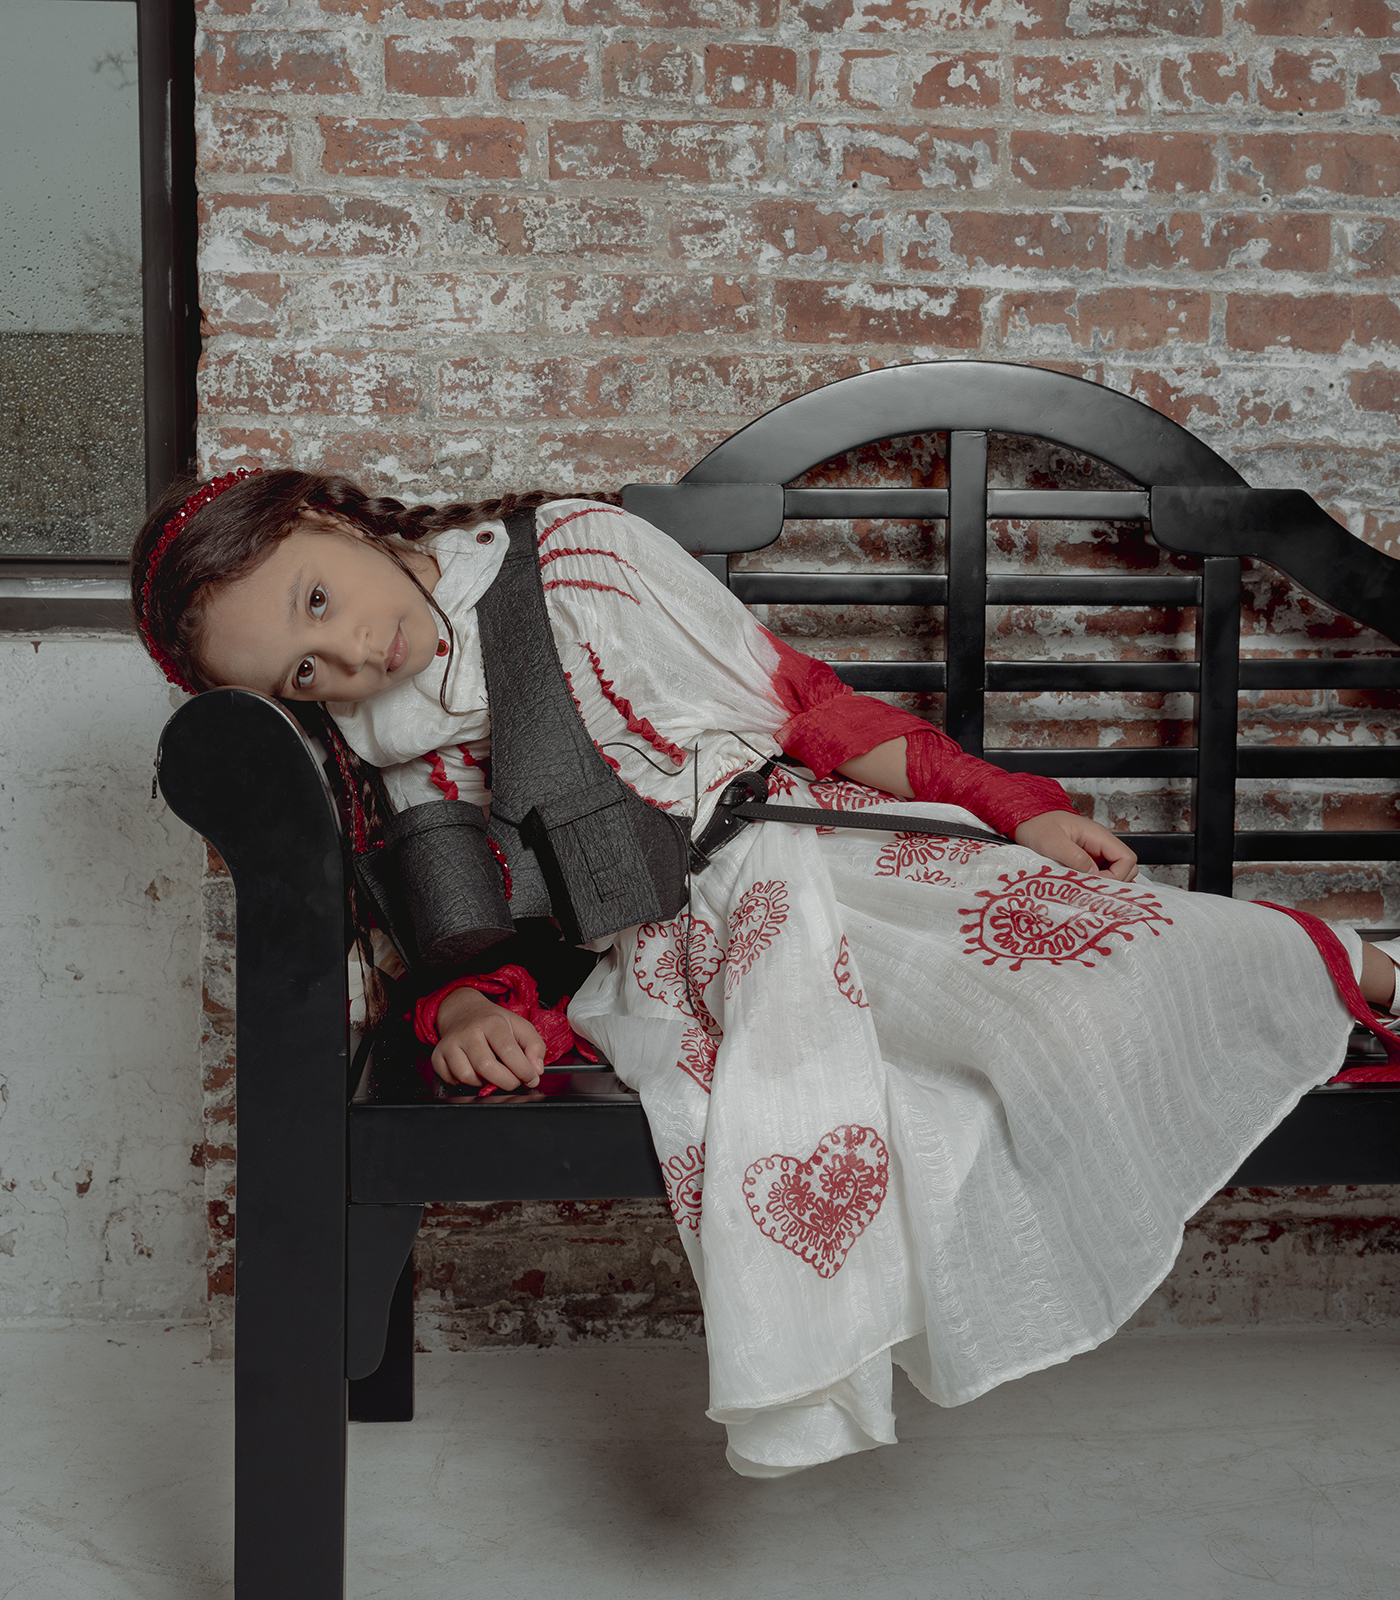 An eight-year-old brown hair girl leaning on a black bench wearing a high neck white silky blouse and a red heart pattern printed box pleat skirt and a black vest, a background of brick wall and rainy windows.